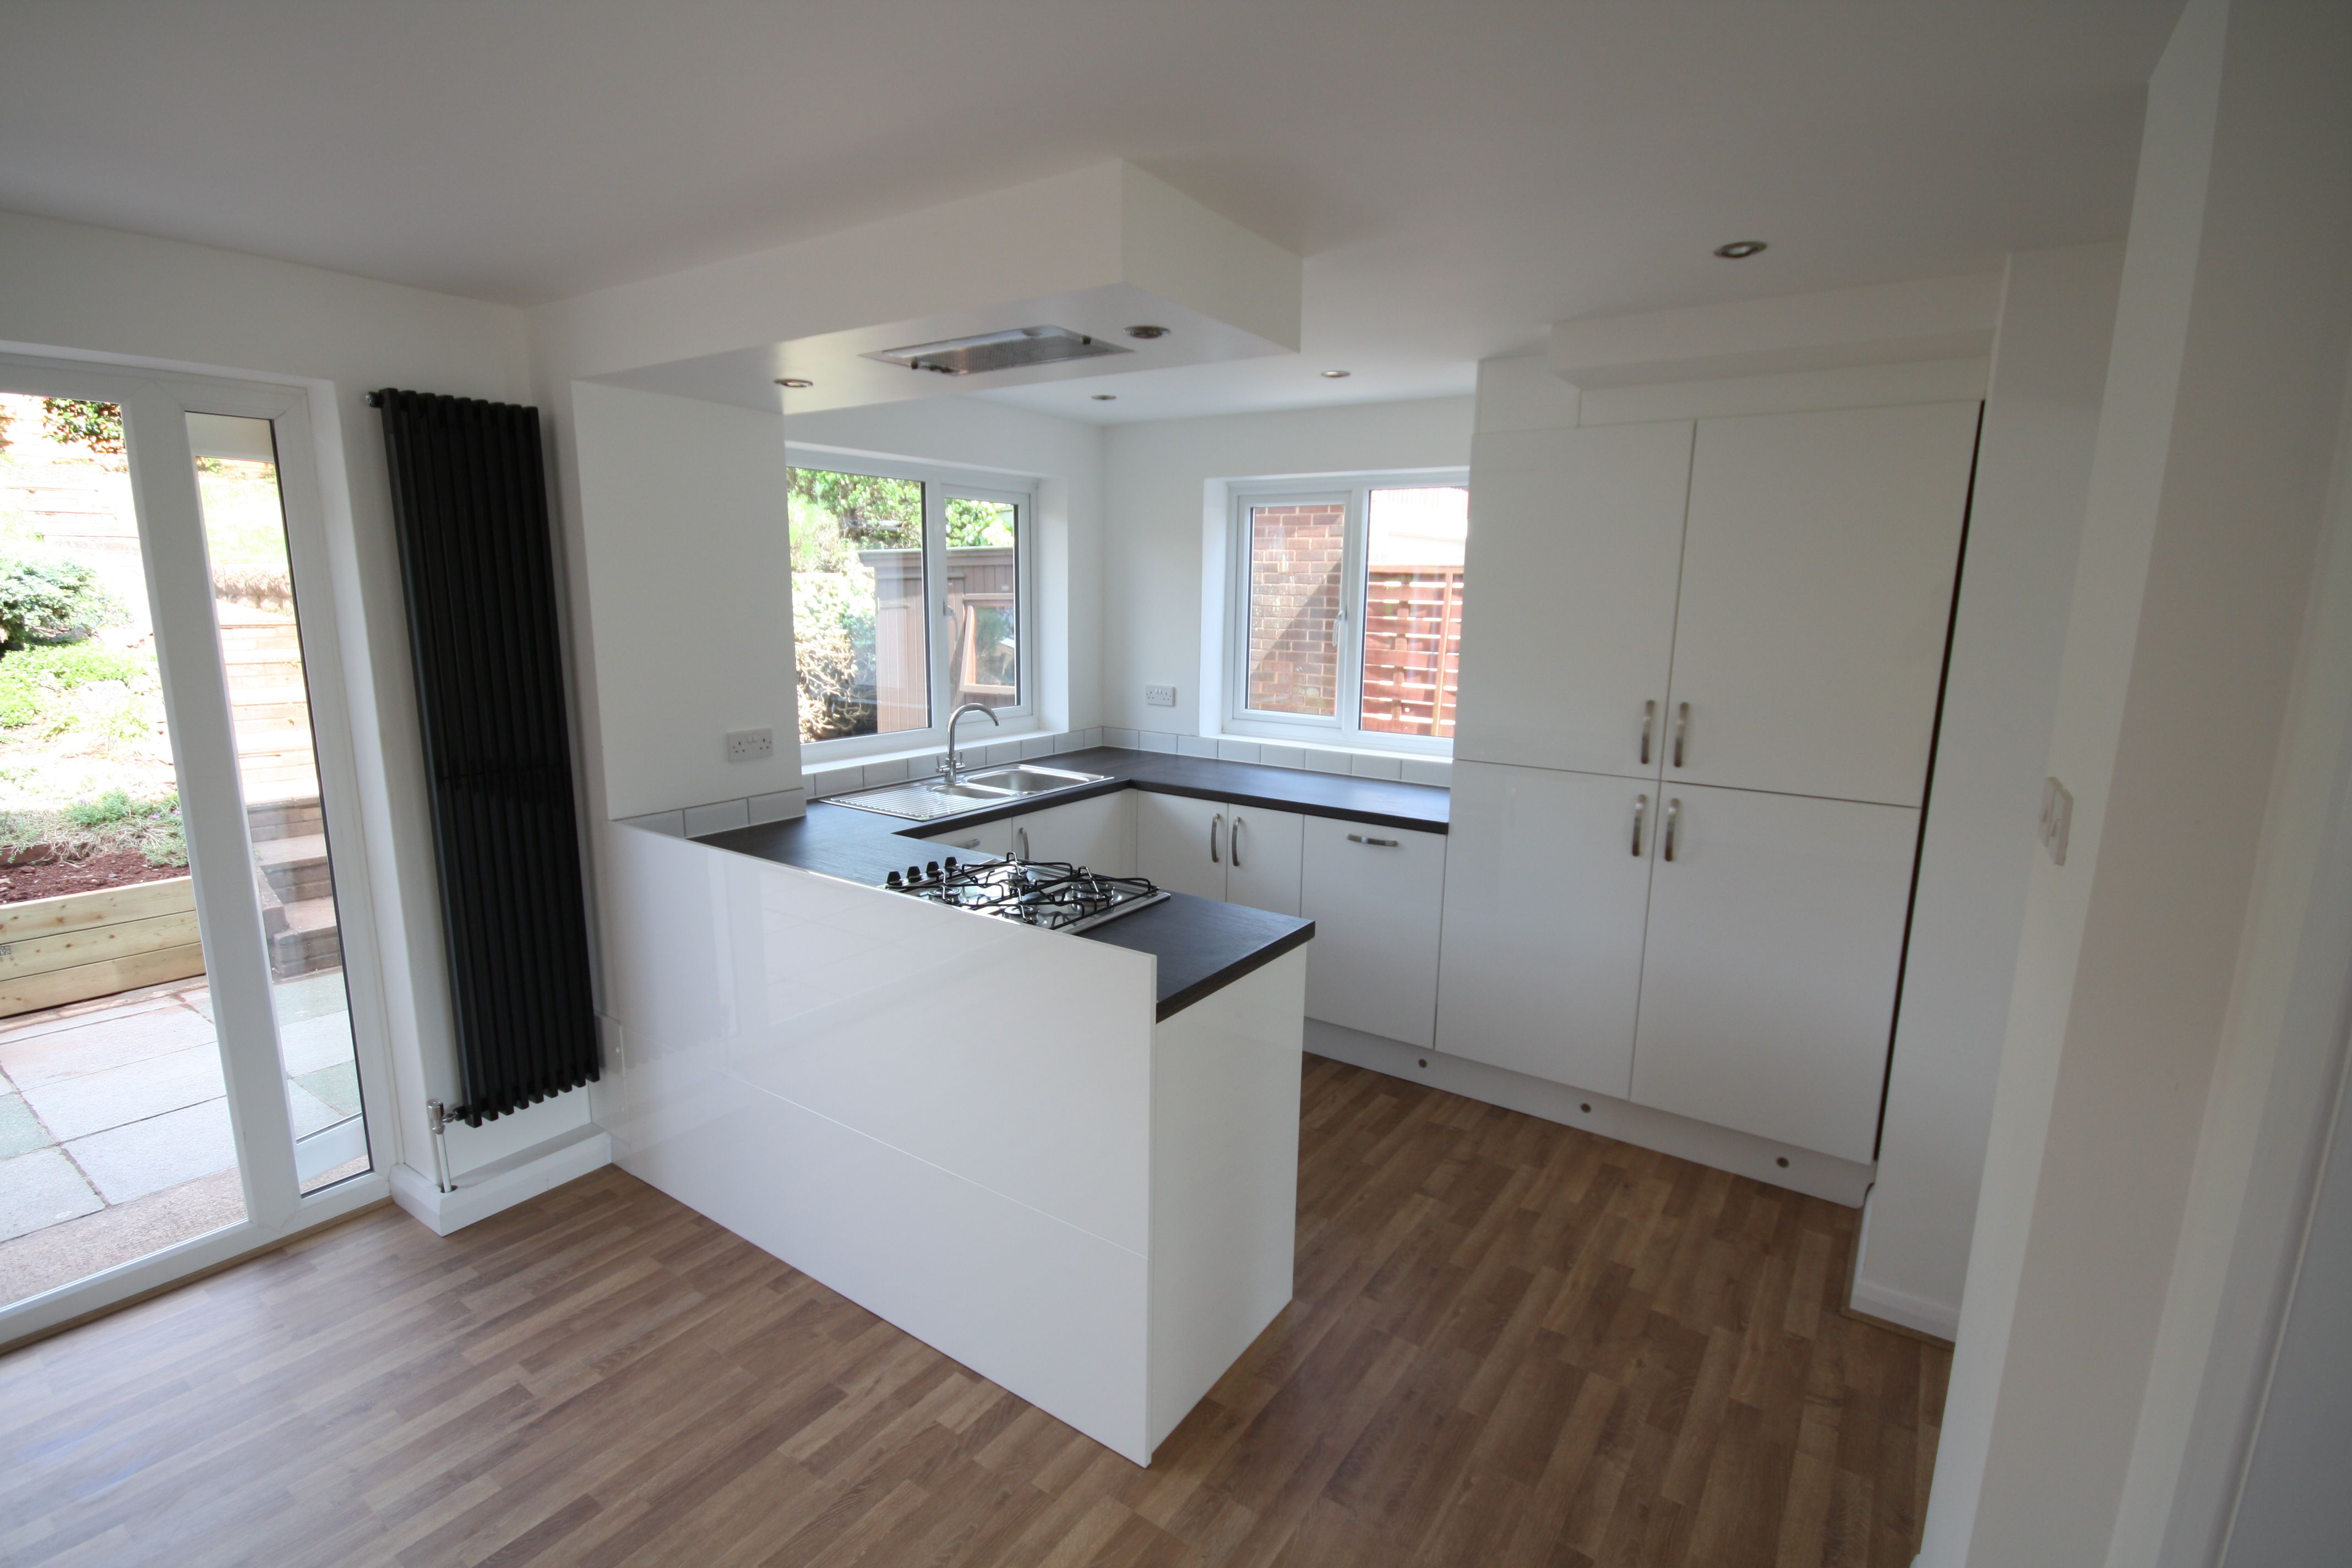 Gloss White Kitchen With Flush Ceiling Extractor Plinth Lighting - Kitchen plinth lights white